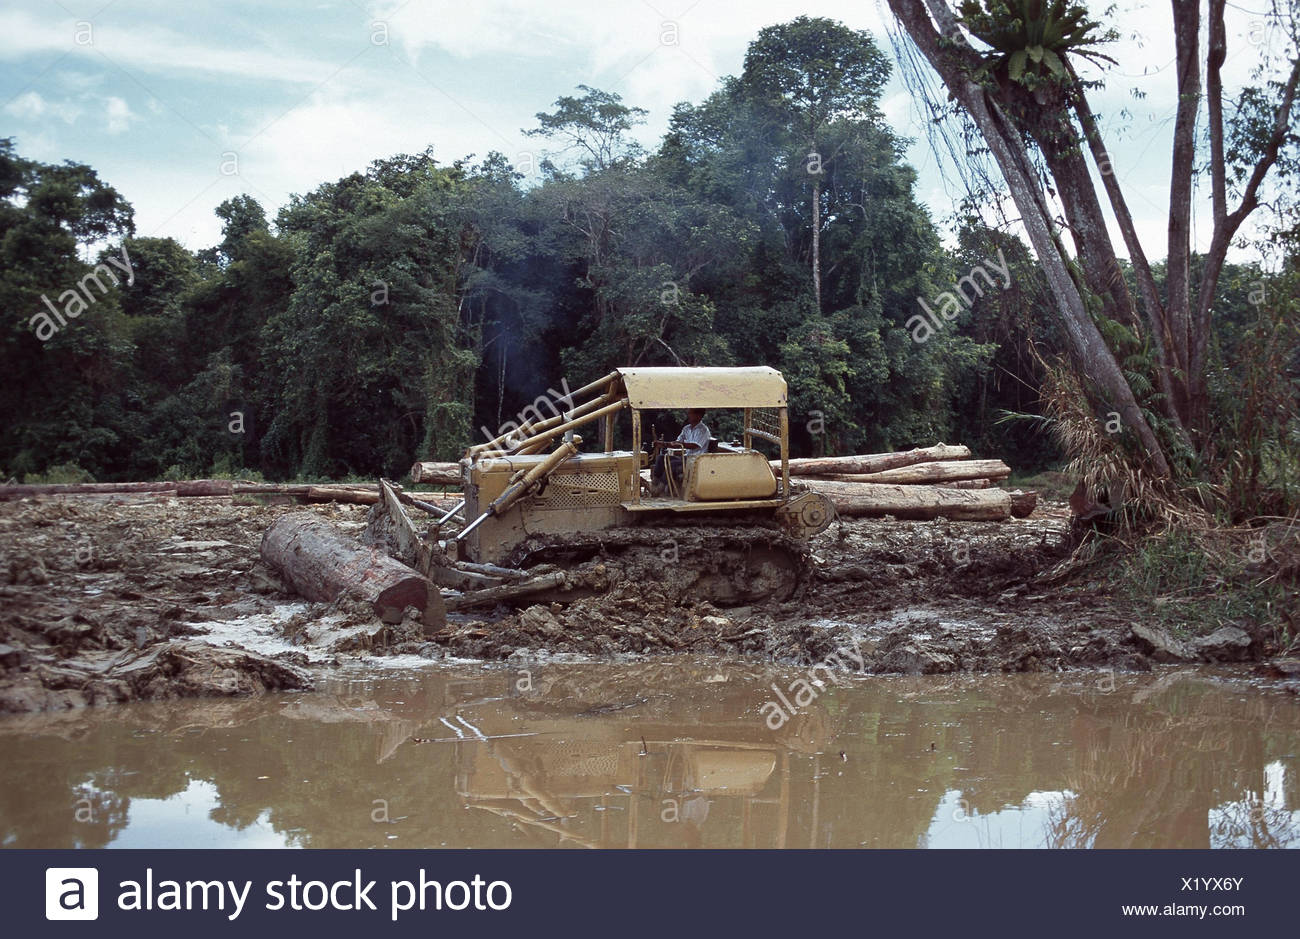 rainforest destruction Indonesia Borneo Stock Photo 276593827